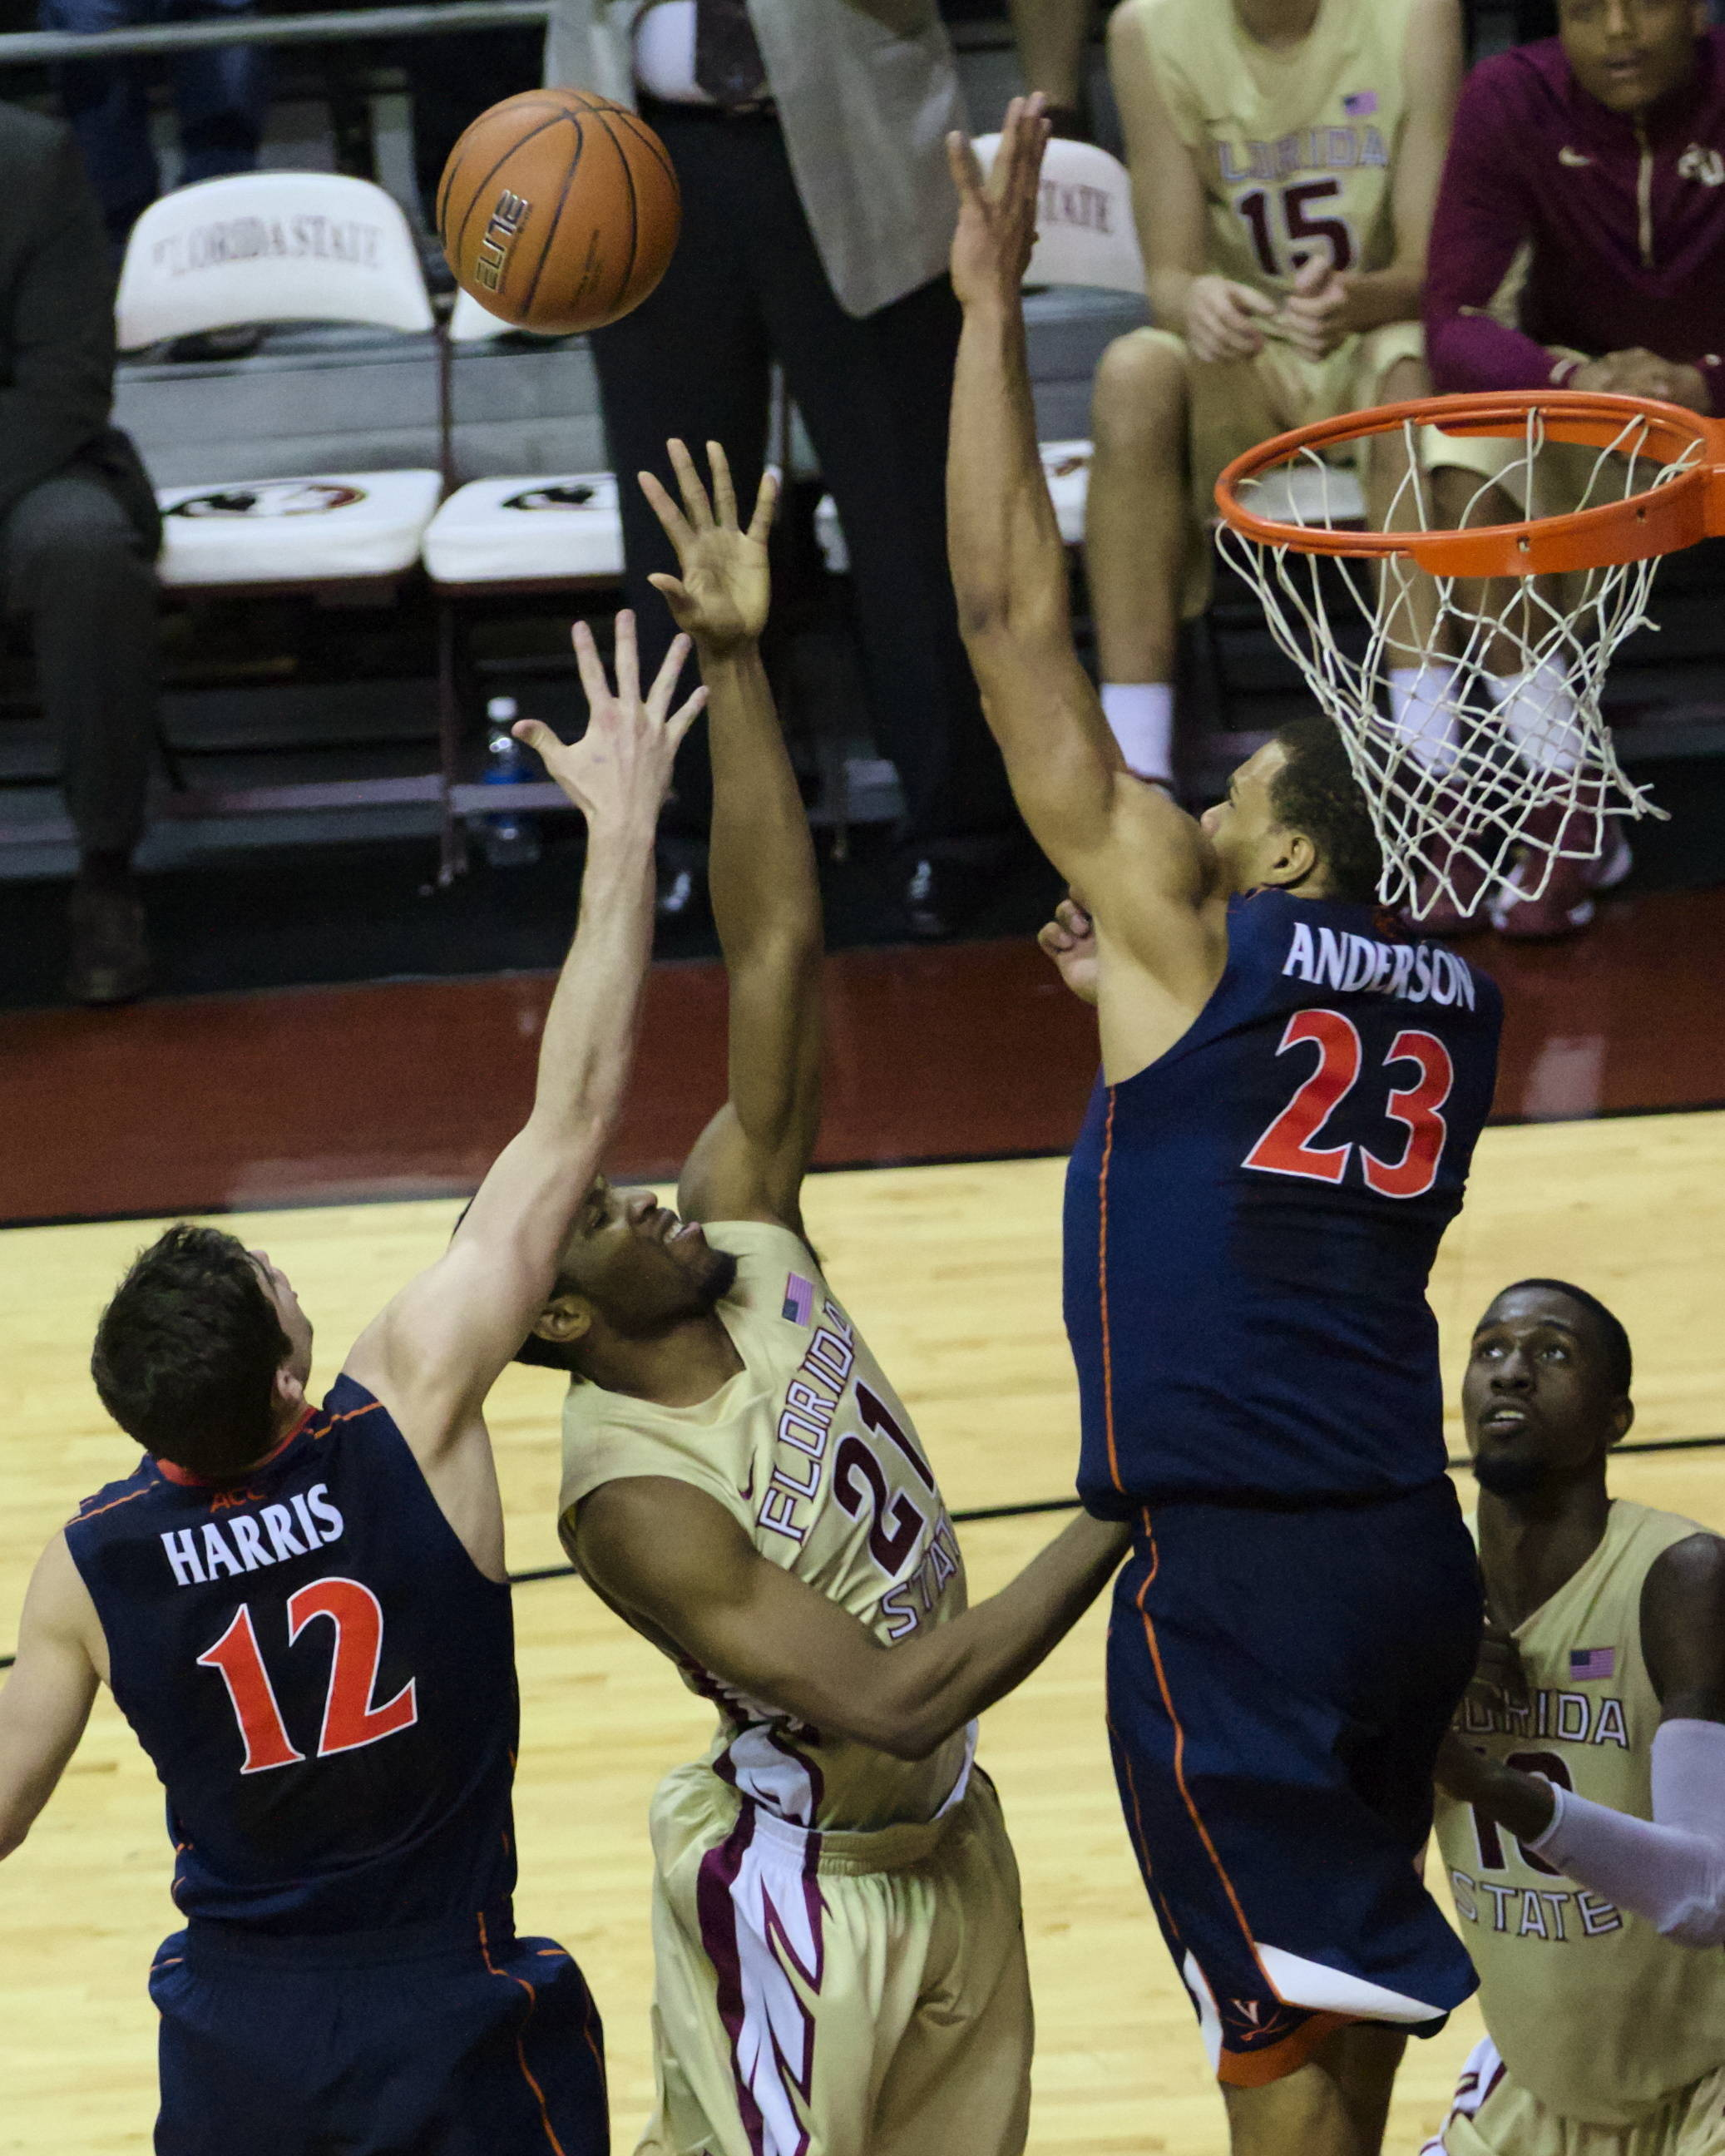 Michael Snaer (21) with his game winning shot, FSU vs Virginia, 03/07/13. (Photo by Steve Musco)